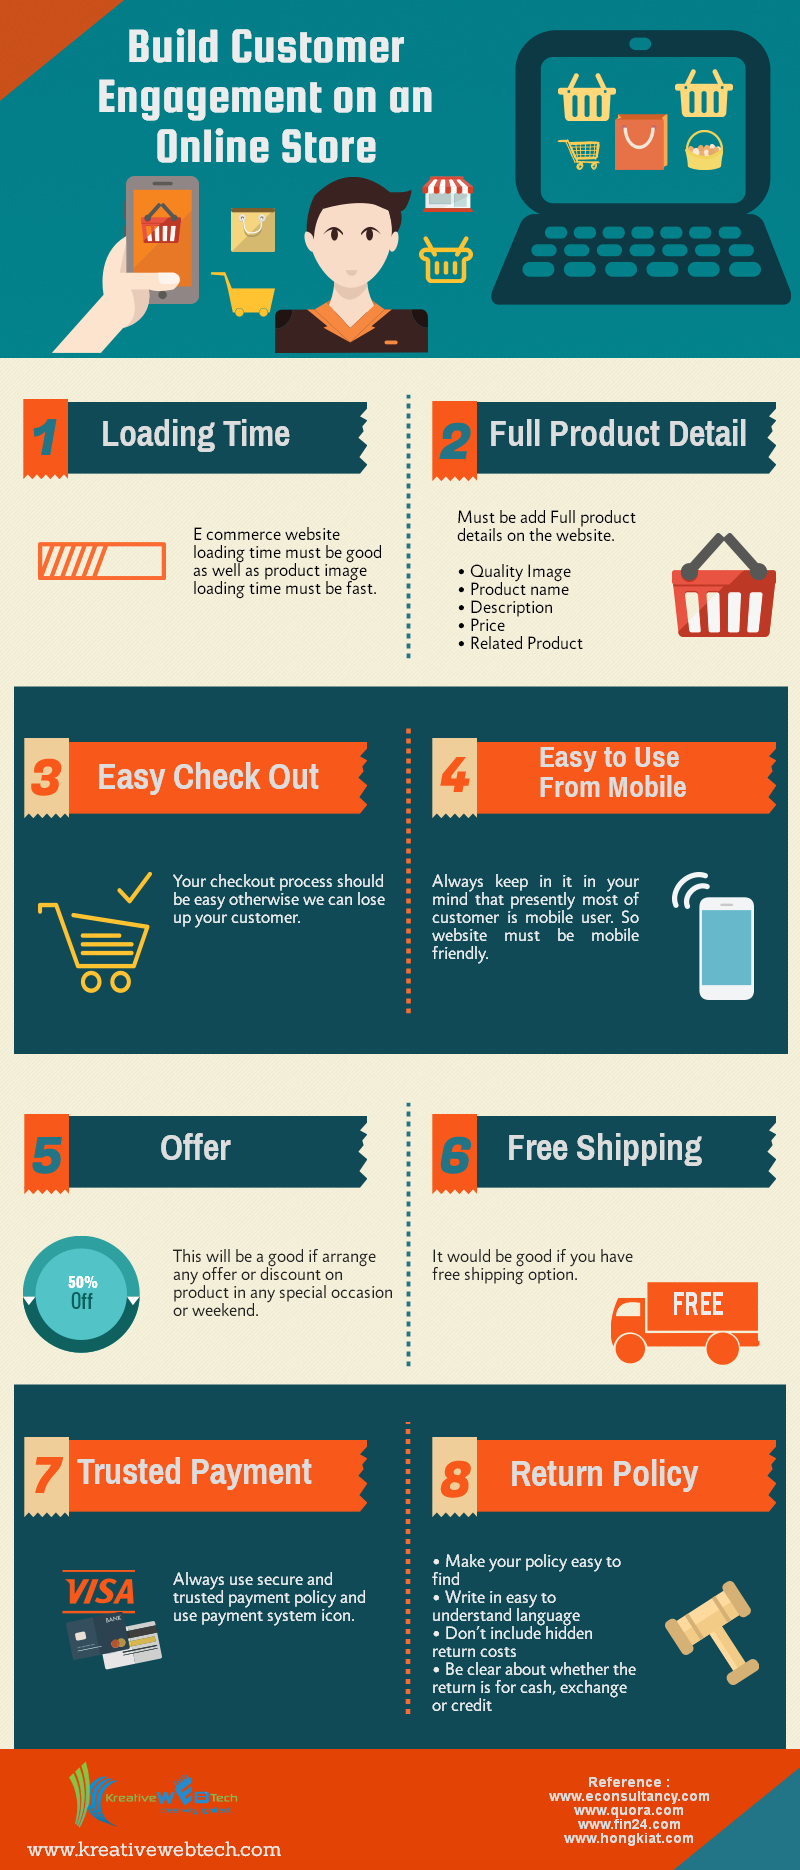 Ideas To Keep Customers Engaged On Your Ecommerce Website